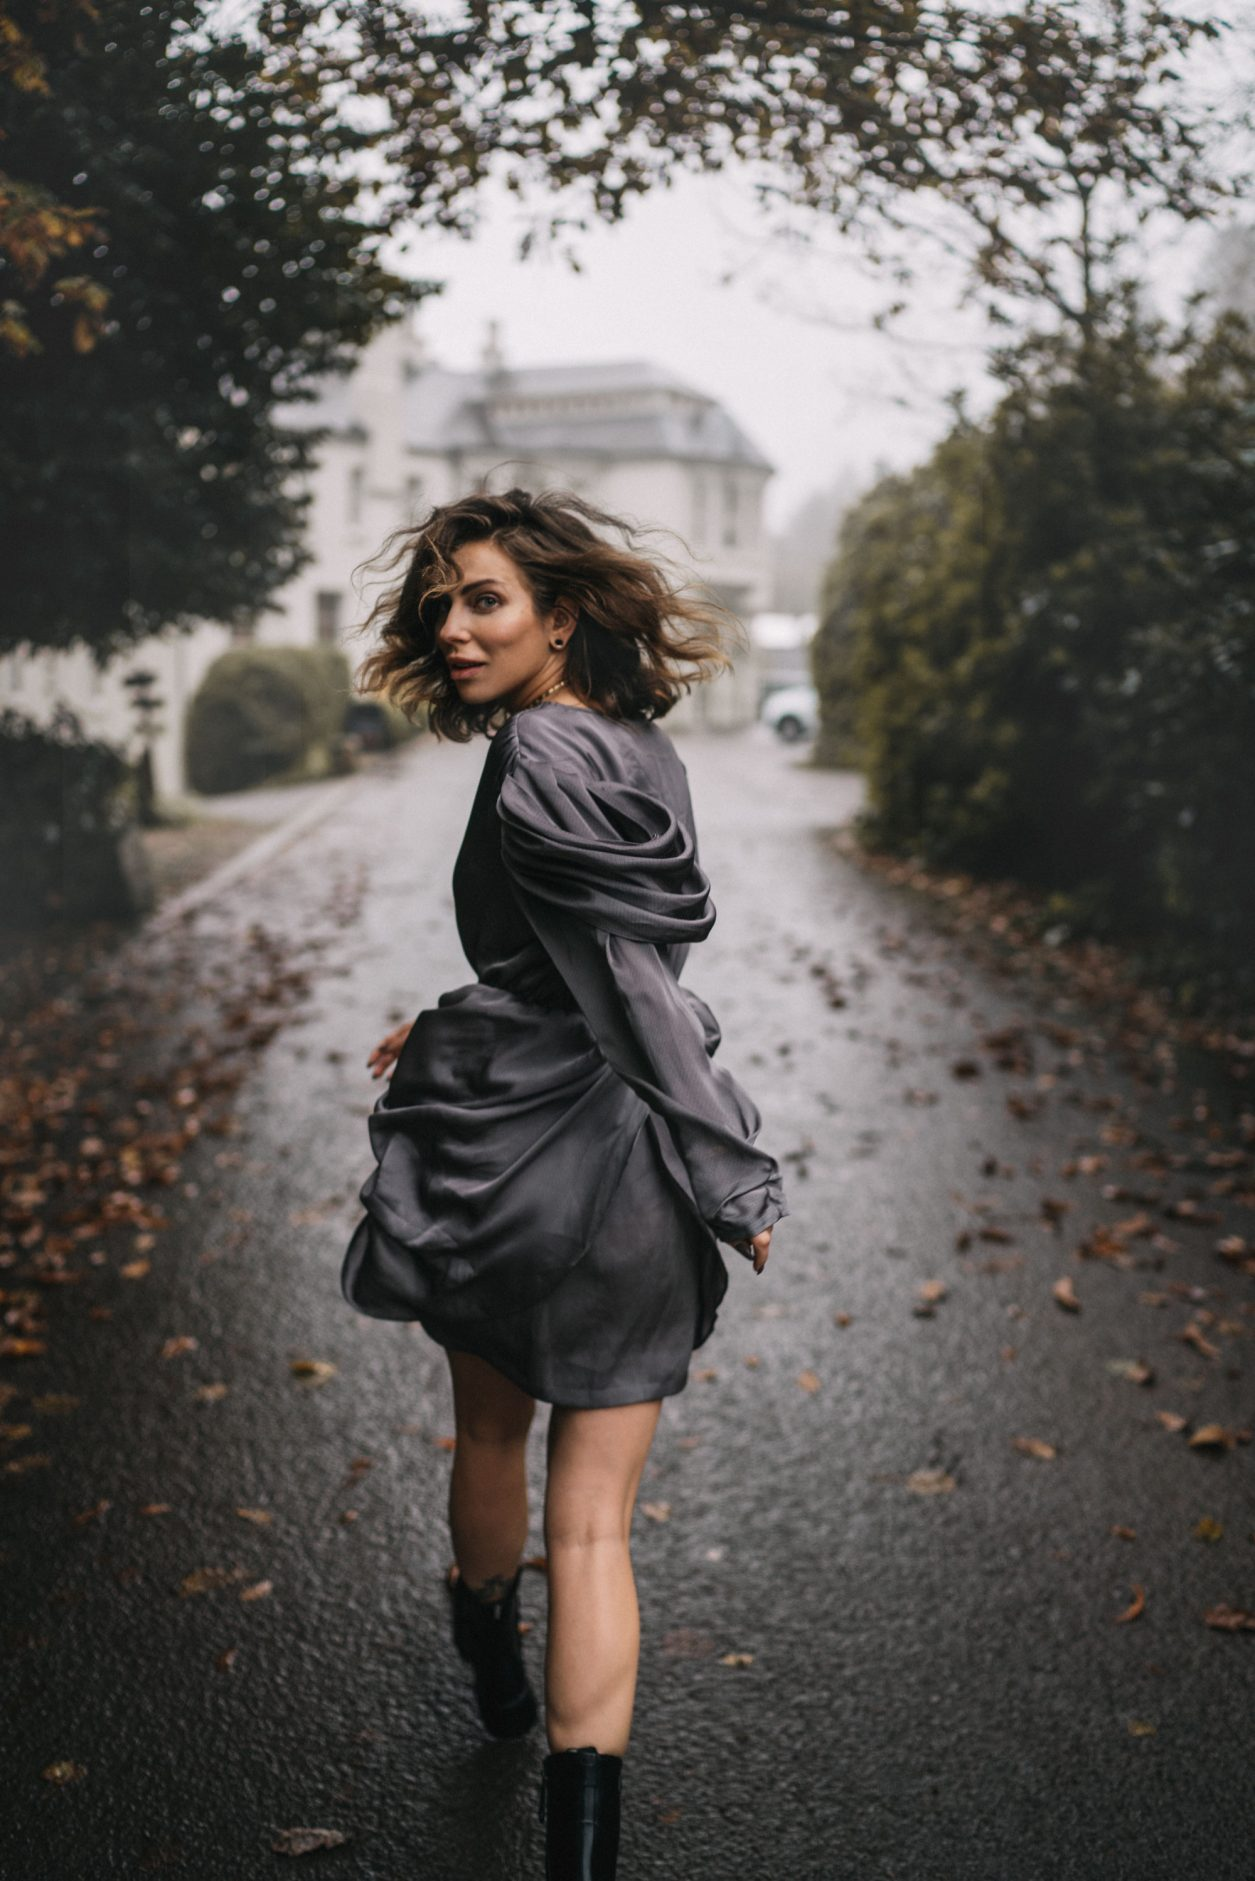 Fashion Editorial via blogger Masha Sedgwick   mood: foggy, moddy, dark woods, spooky, Halloween, festive, vintage, in the movement, running, fog   grey party dress via Designers Remix (sustainable)   Location: Beech Hill House Hotel in Northern Ireland (Londonderry)  